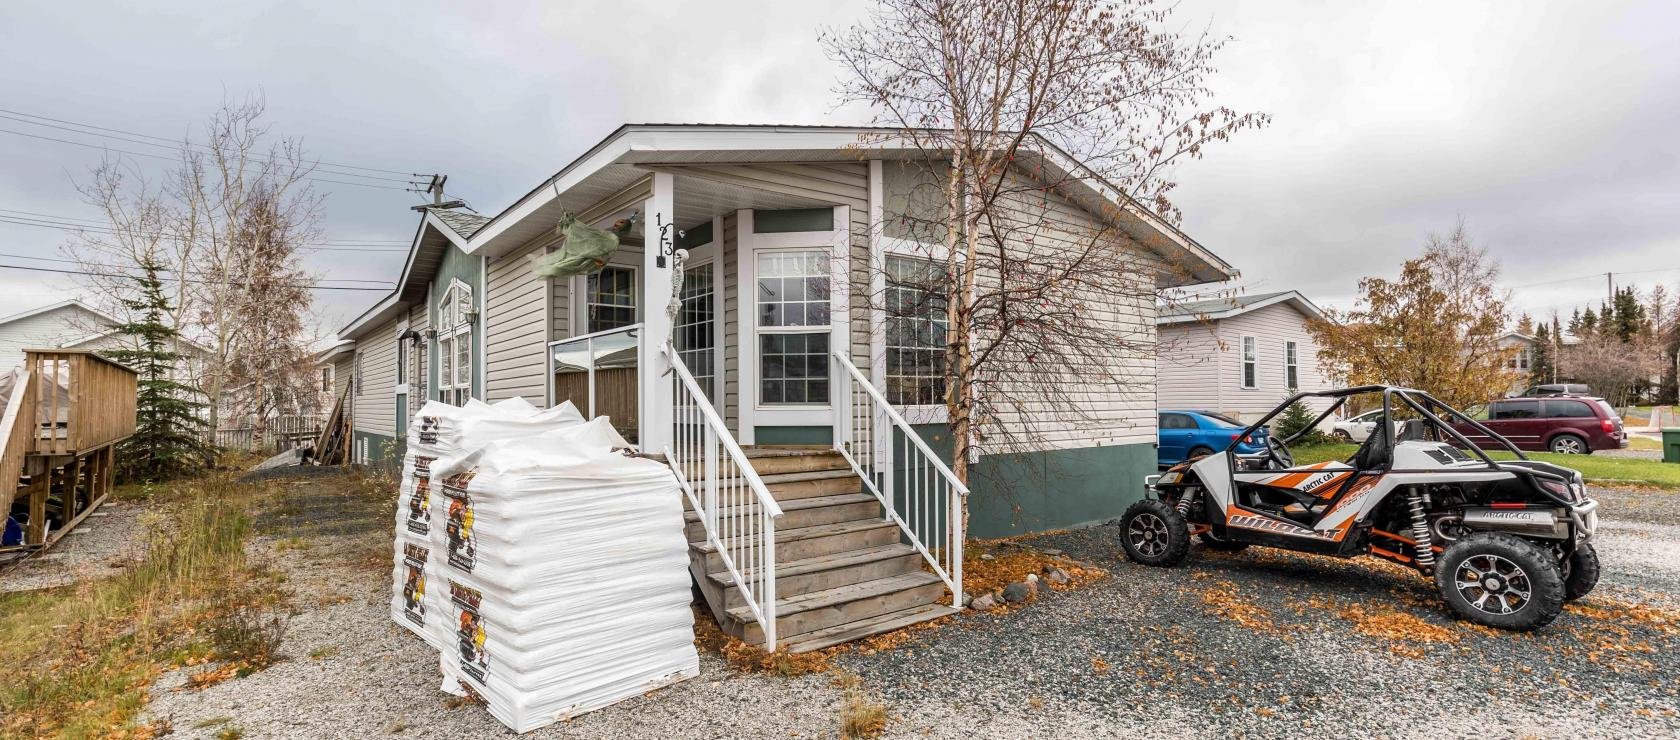 123 Gwilliam Crescent, Range Lake, Yellowknife 2